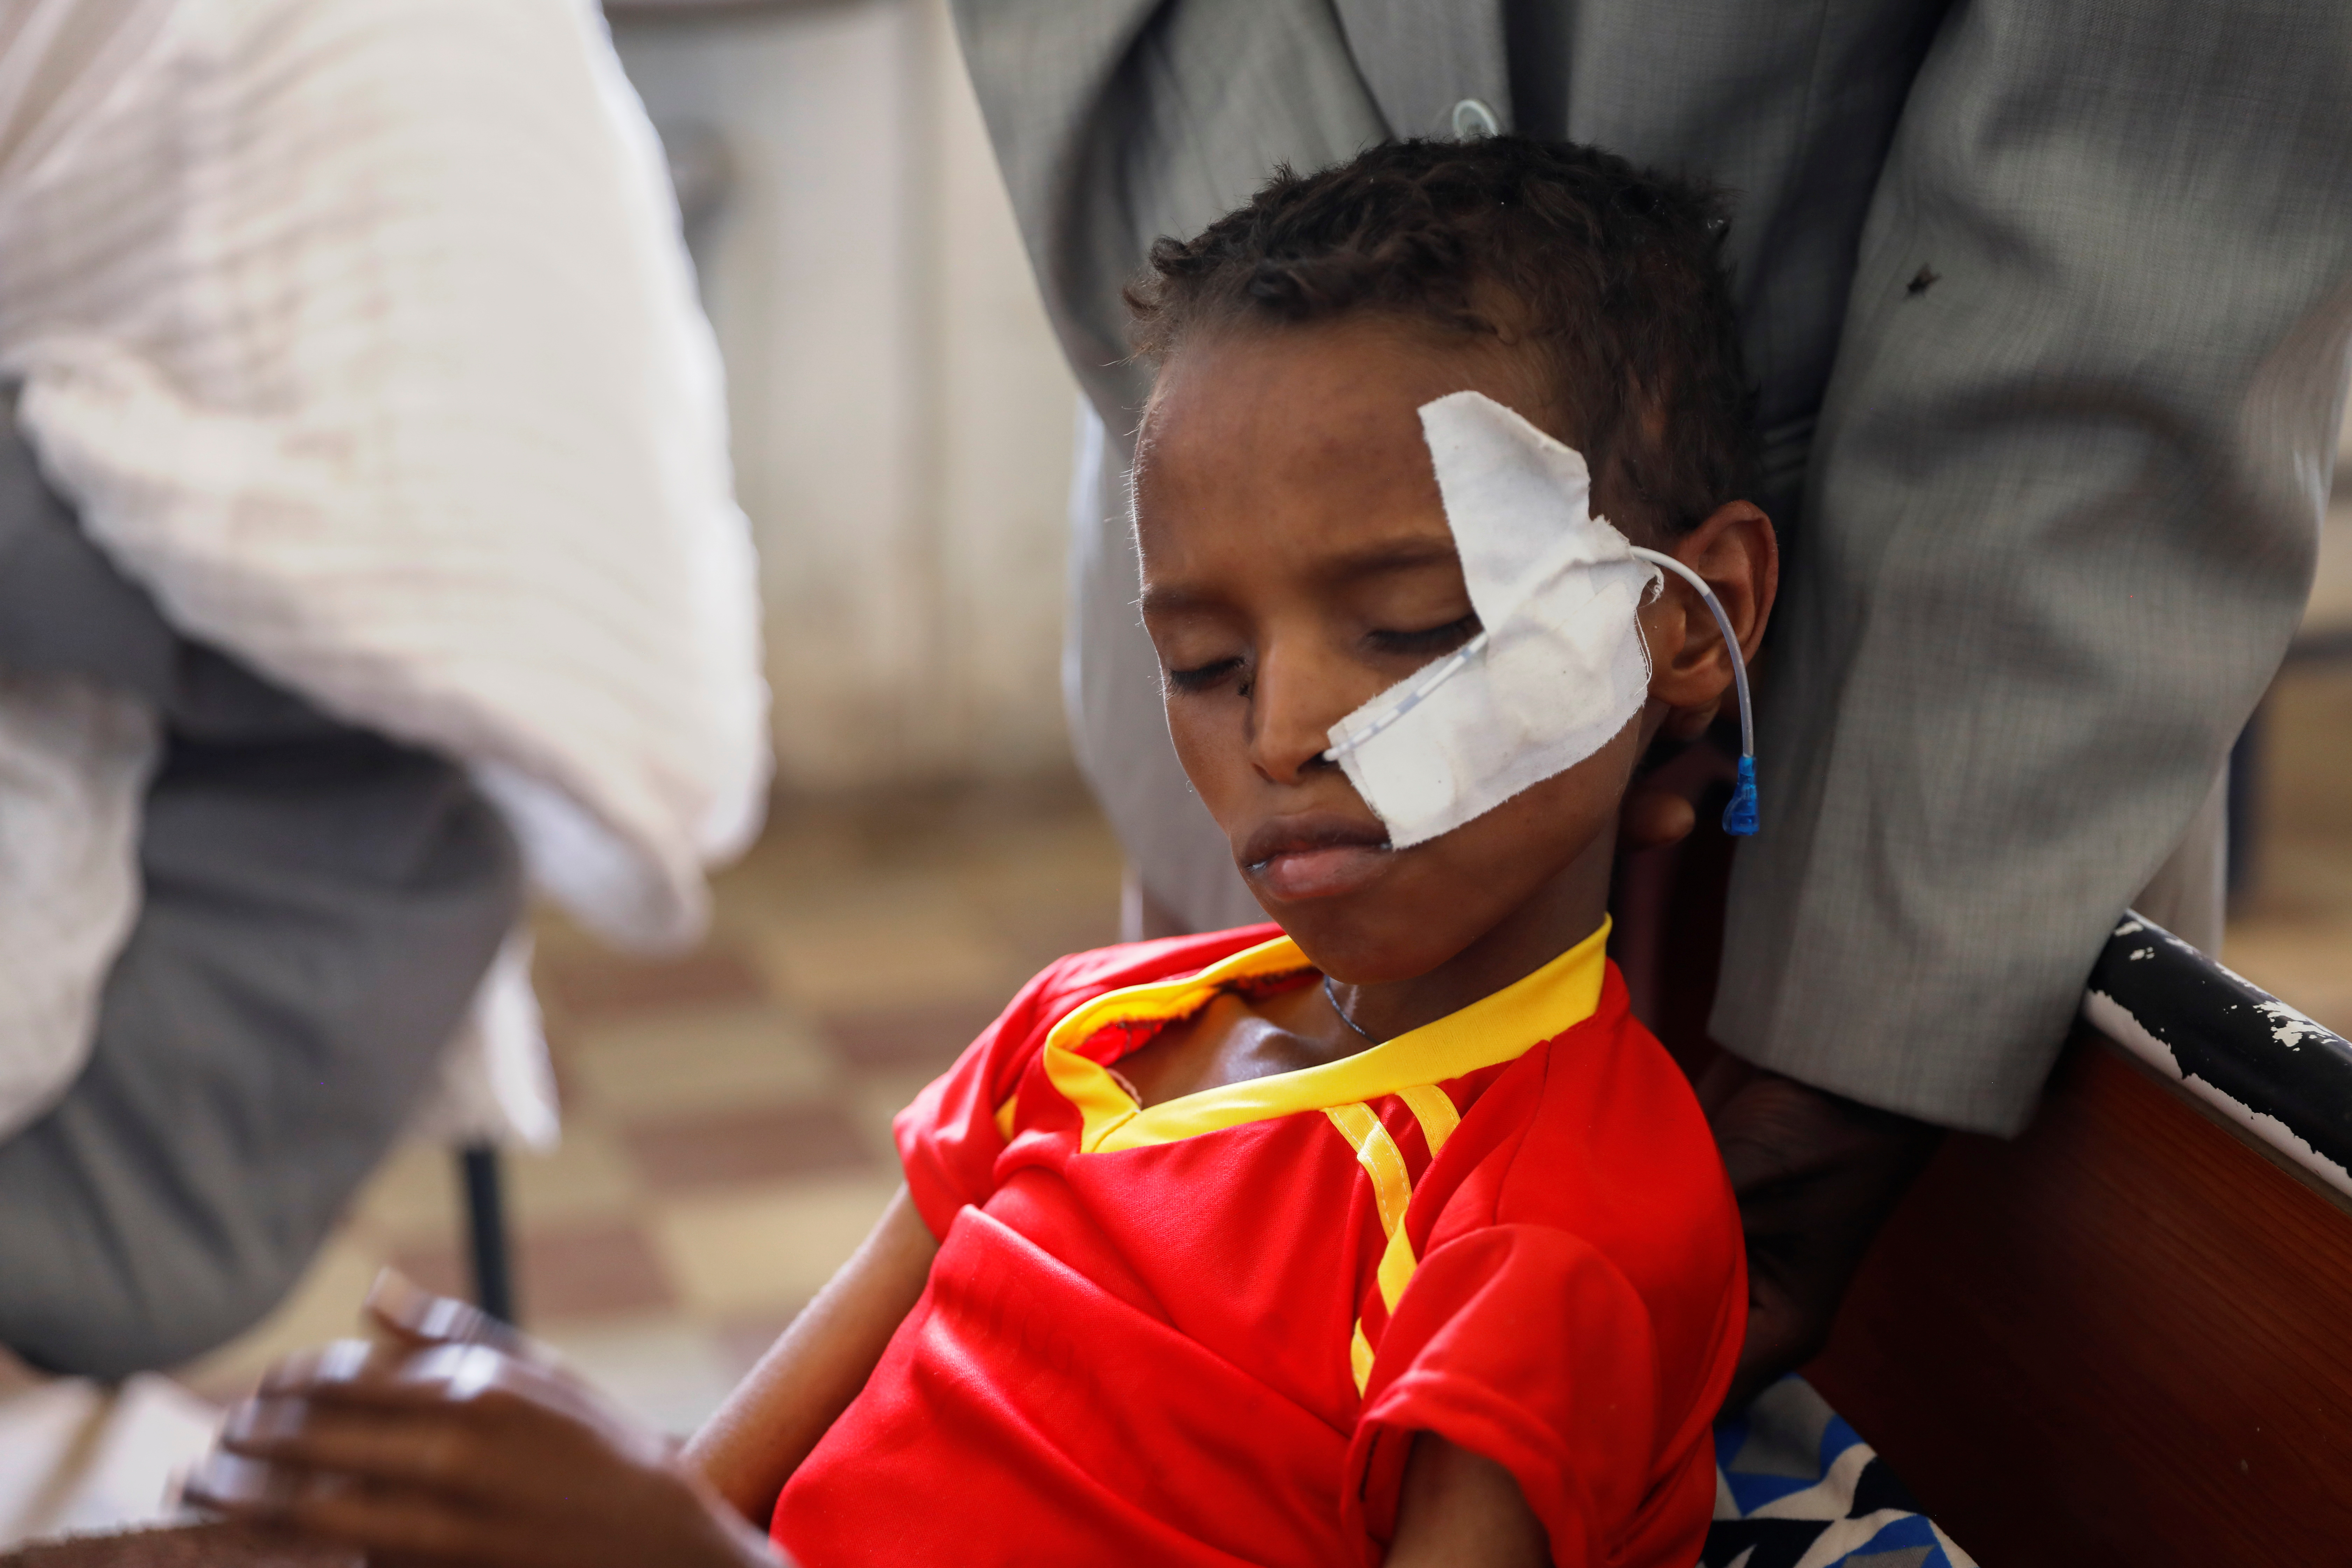 Fourteen-year-old Adan Muez is helped to sit up in his bed at Adigrat General Hospital in the town of Adigrat, Tigray region, Ethiopia, March 18, 2021. REUTERS/Baz Ratner